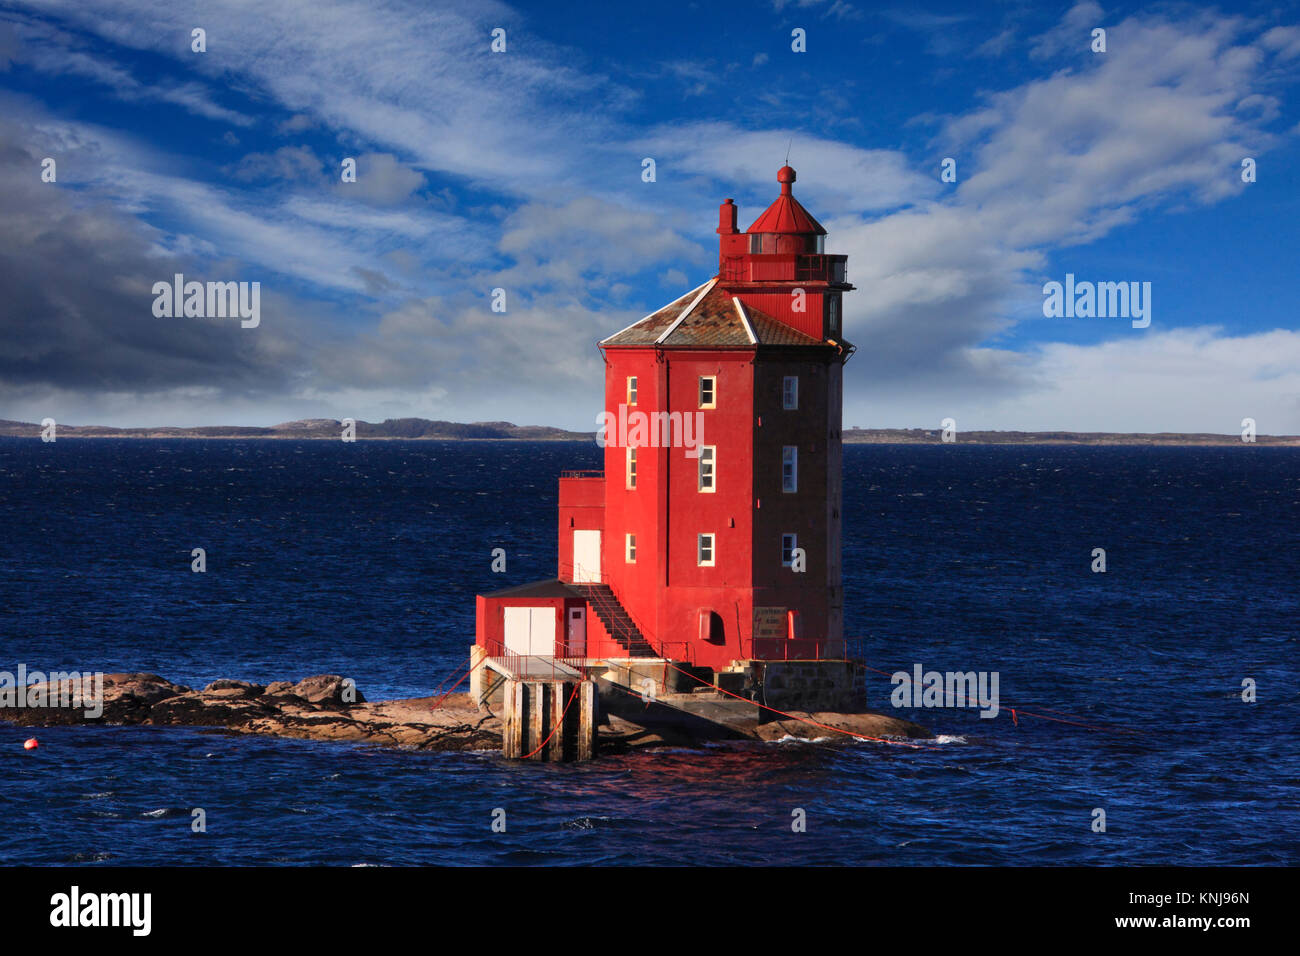 Kjeungskjaer lighthouse, located in municipality of Orland in Sor-Trondelag, Norway - Stock Image